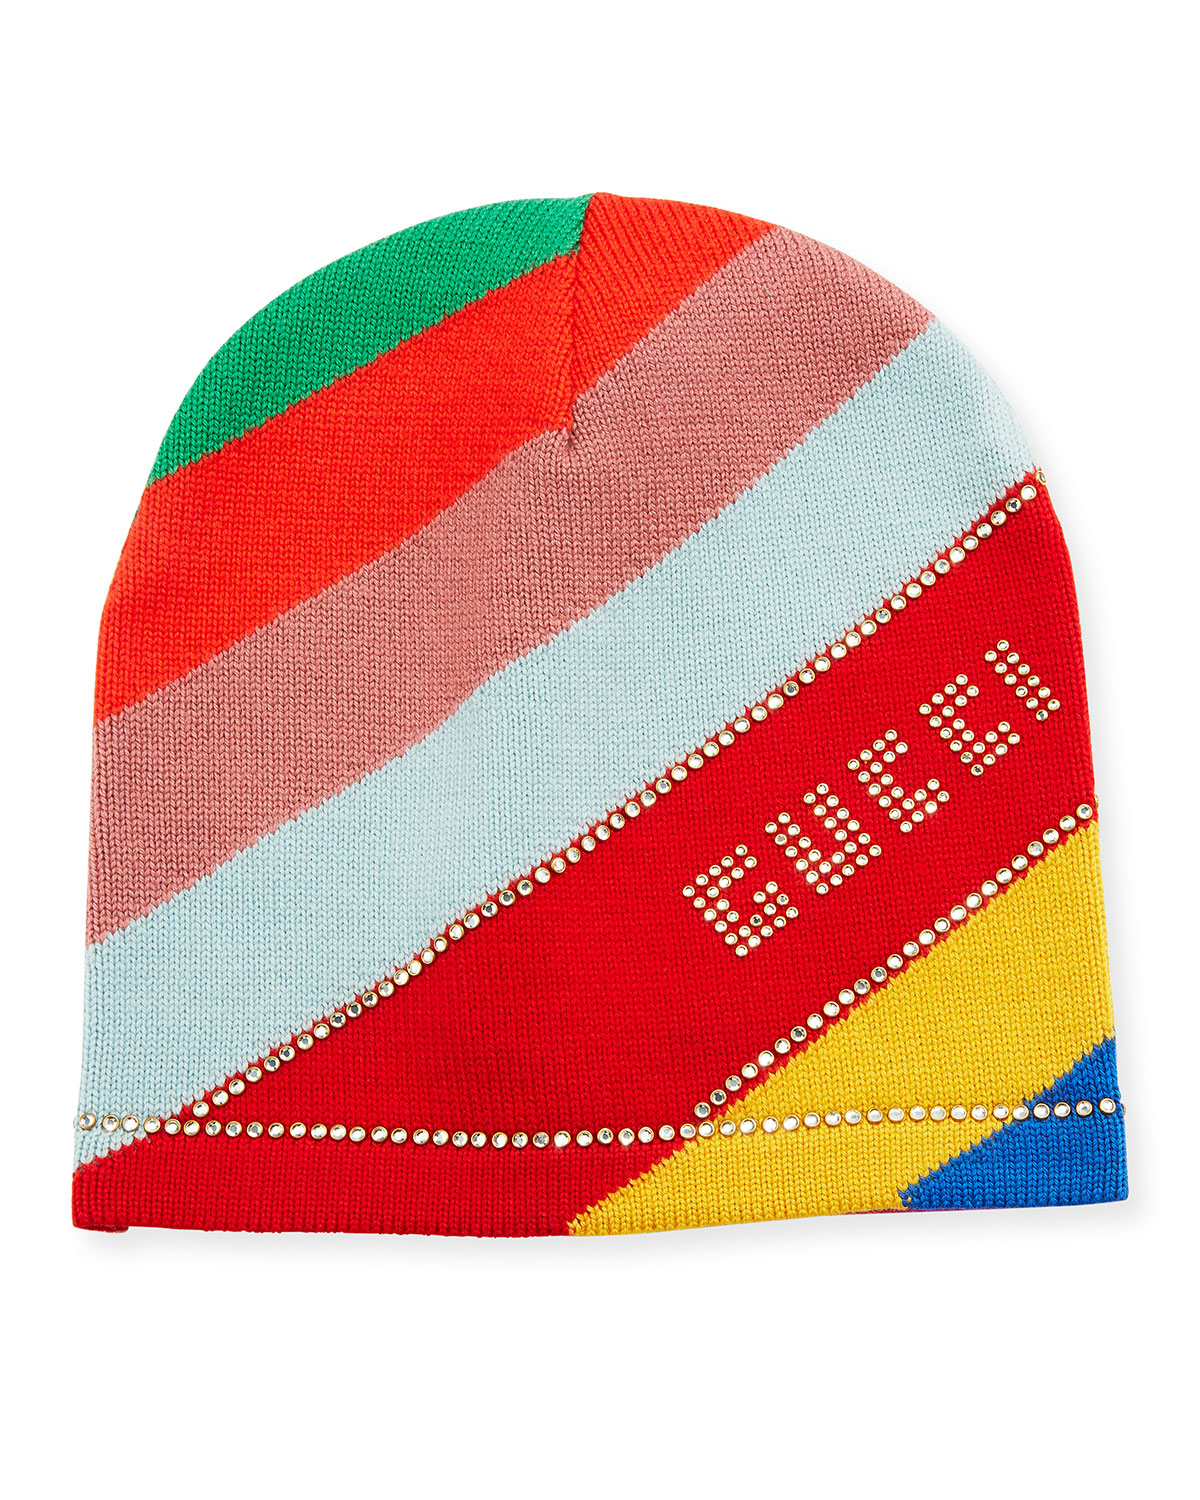 Cheap women s beanies hats for sale - Discount store - Cools.com 6ded3e121e07